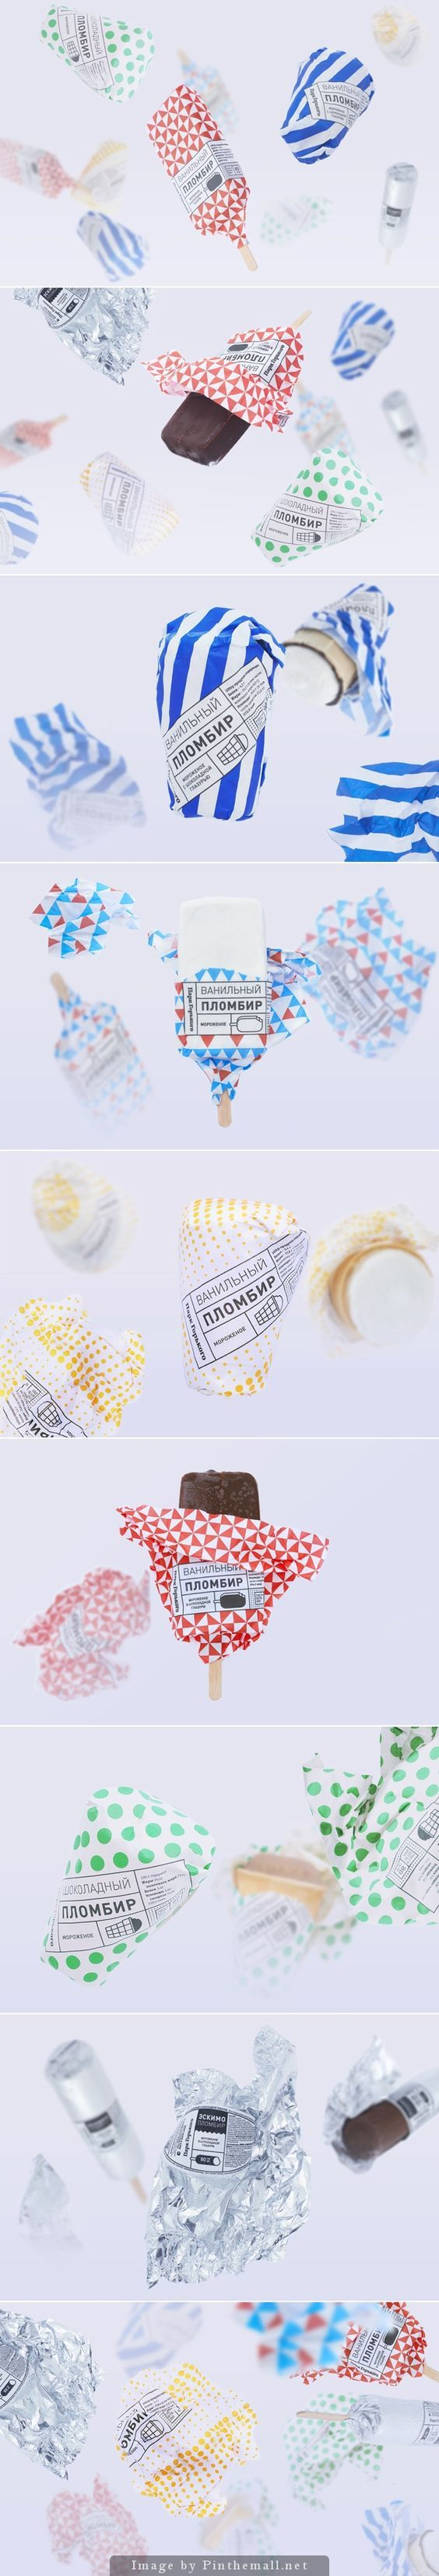 Gorky Park Icecream by Anastasia Genkina. Great ice cream packaging is always popular PD: